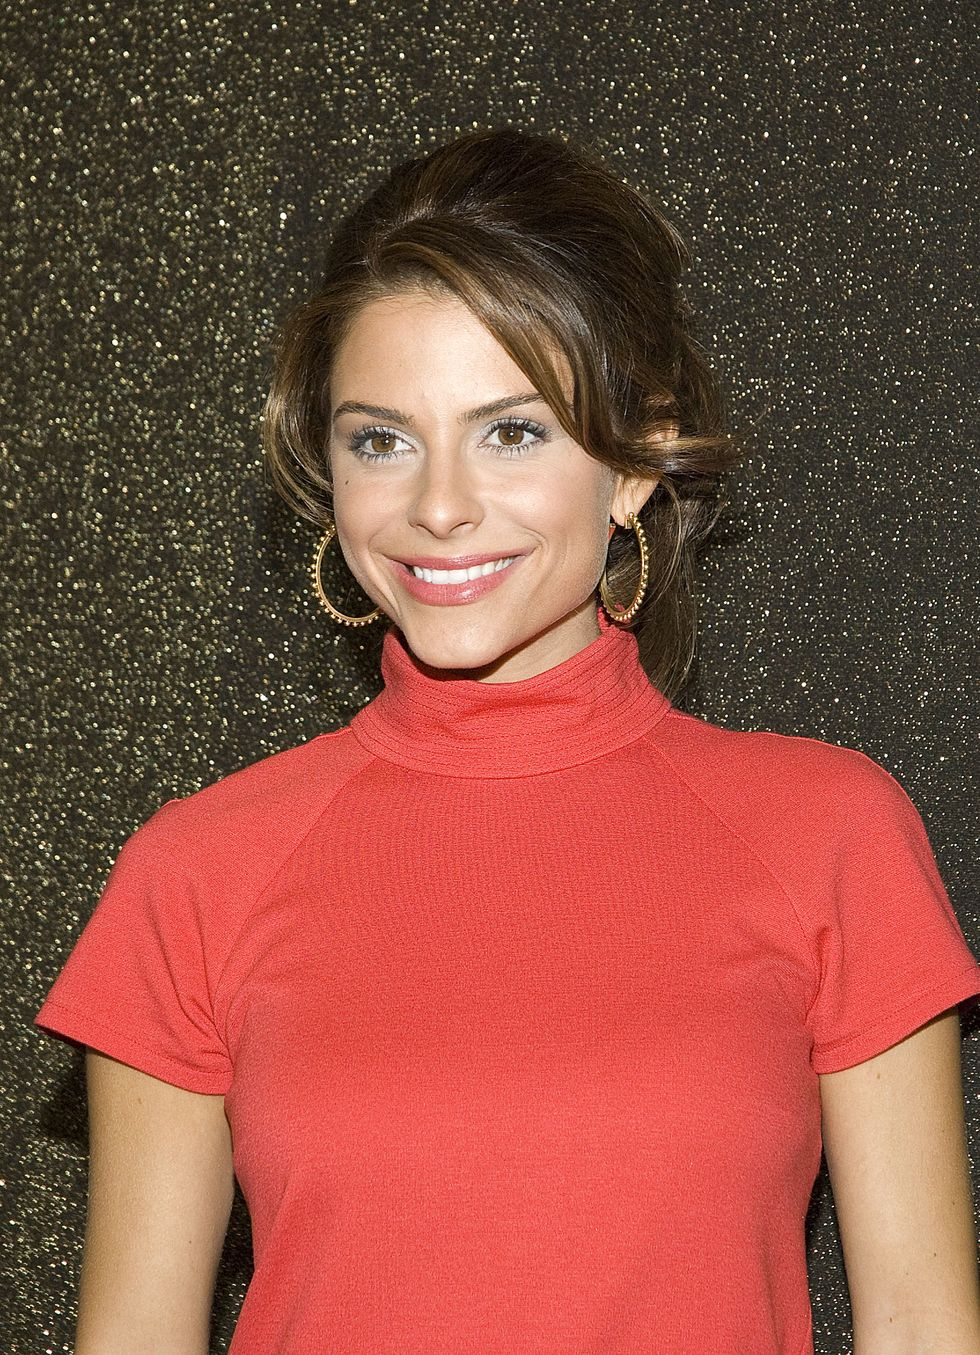 maria-menounos-clash-of-the-choirs-rehearsal-in-new-york-city-01